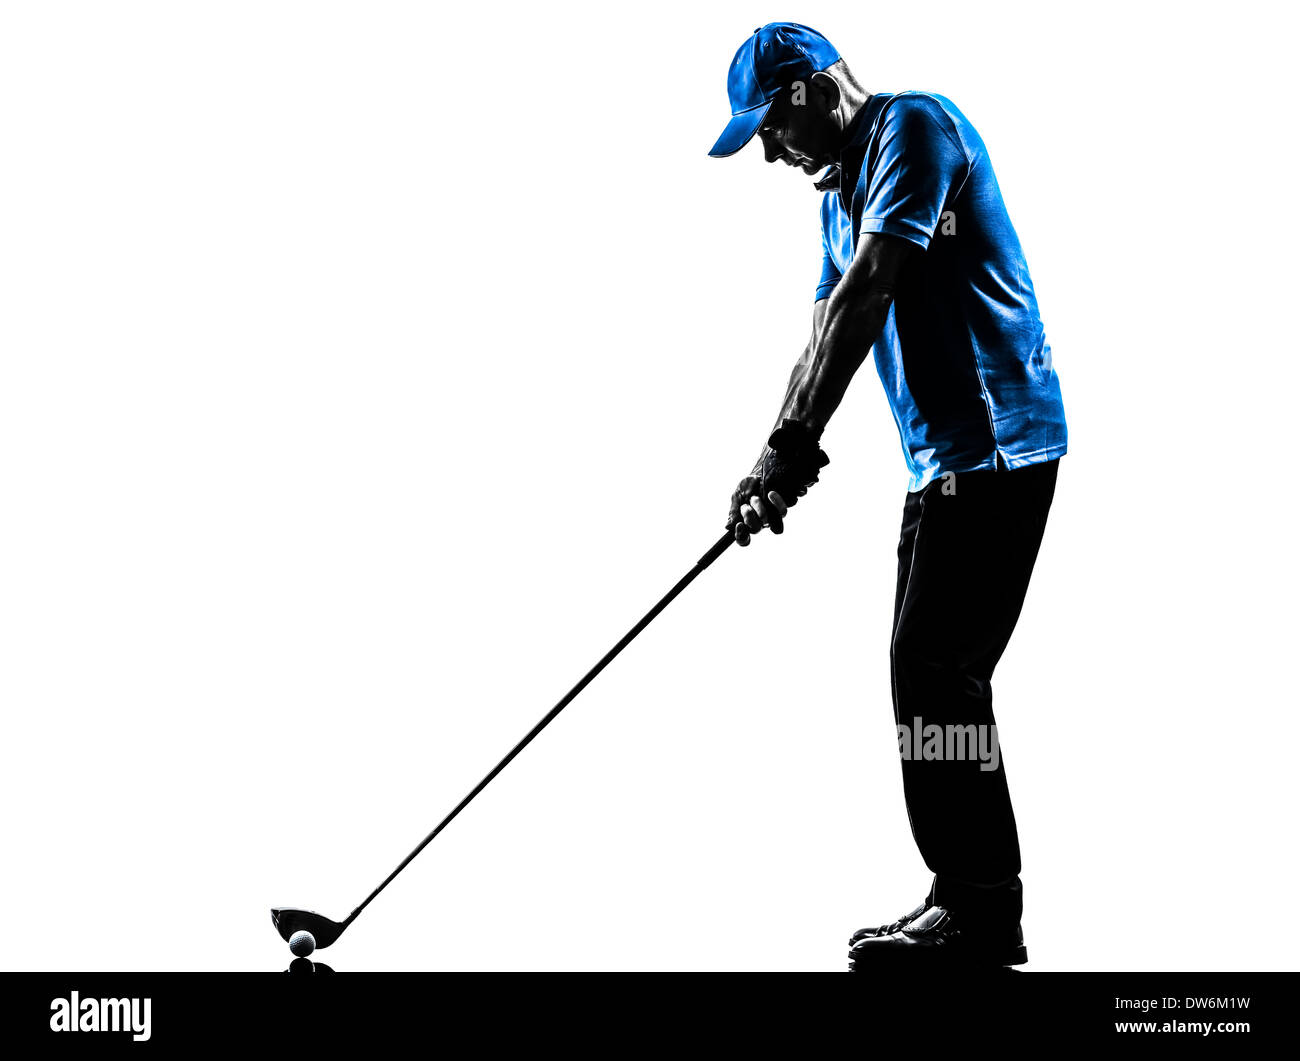 stock photo one man golfer golfing golf swing in silhouette studio isolated on white background